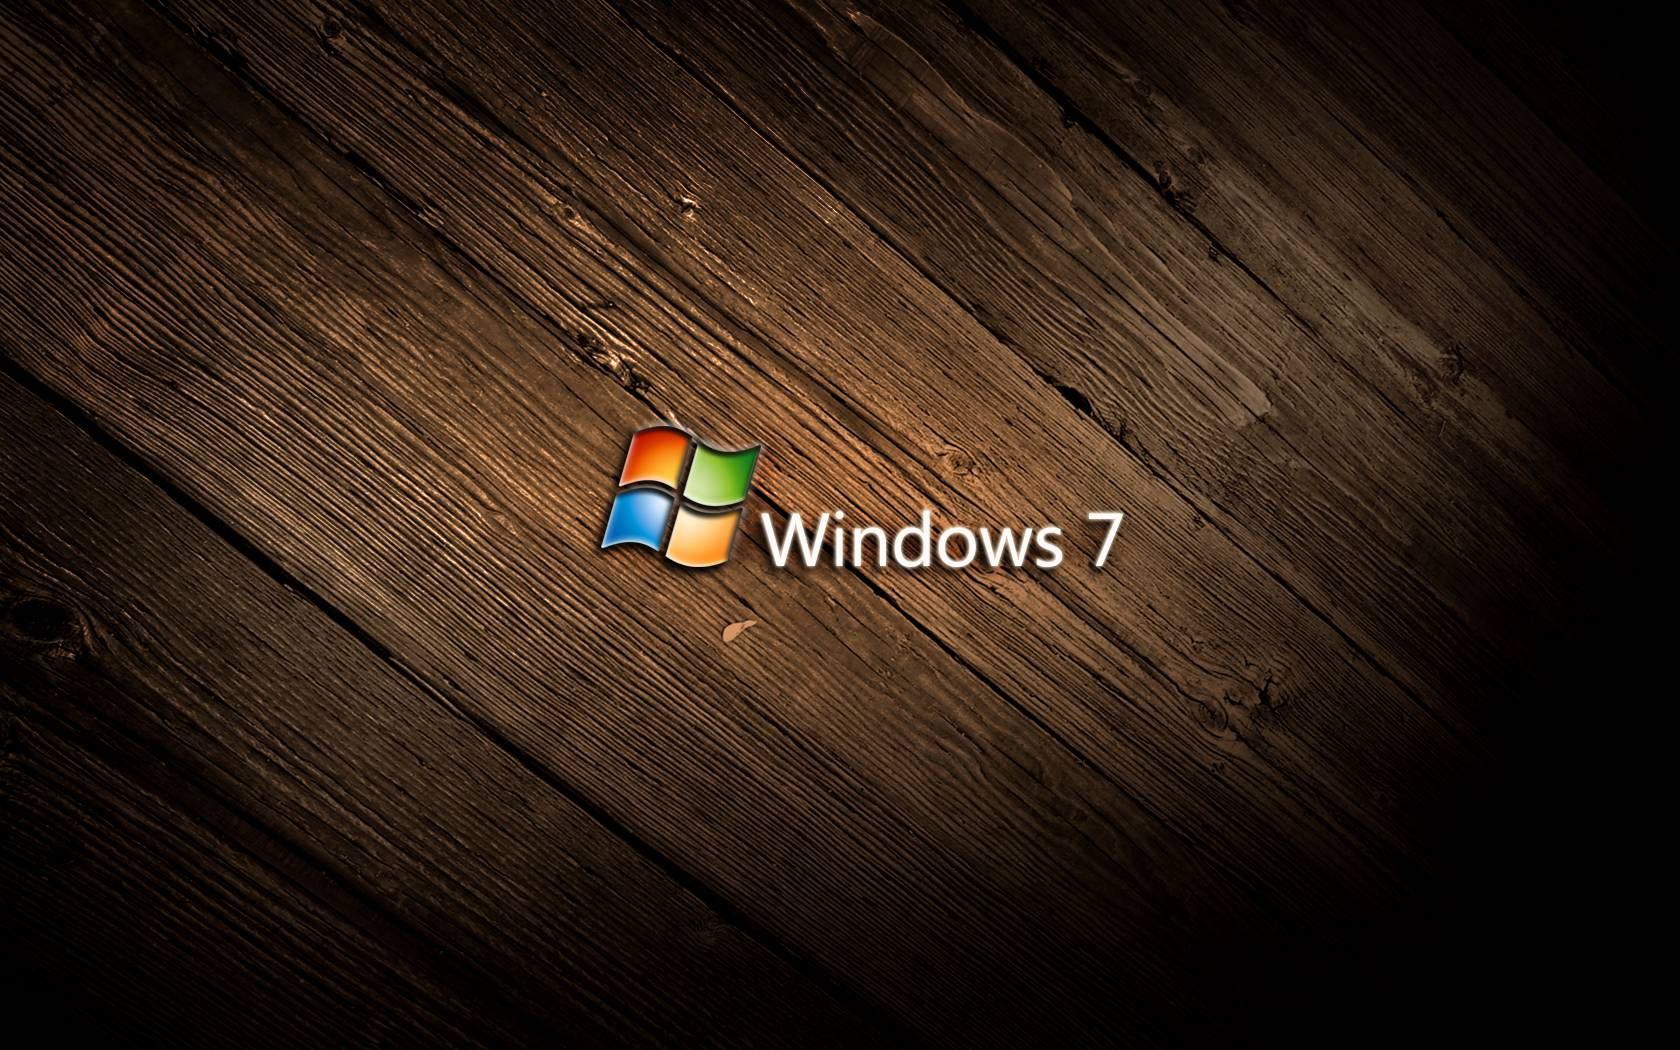 Windows 7 HD Wallpapers 1680x1050